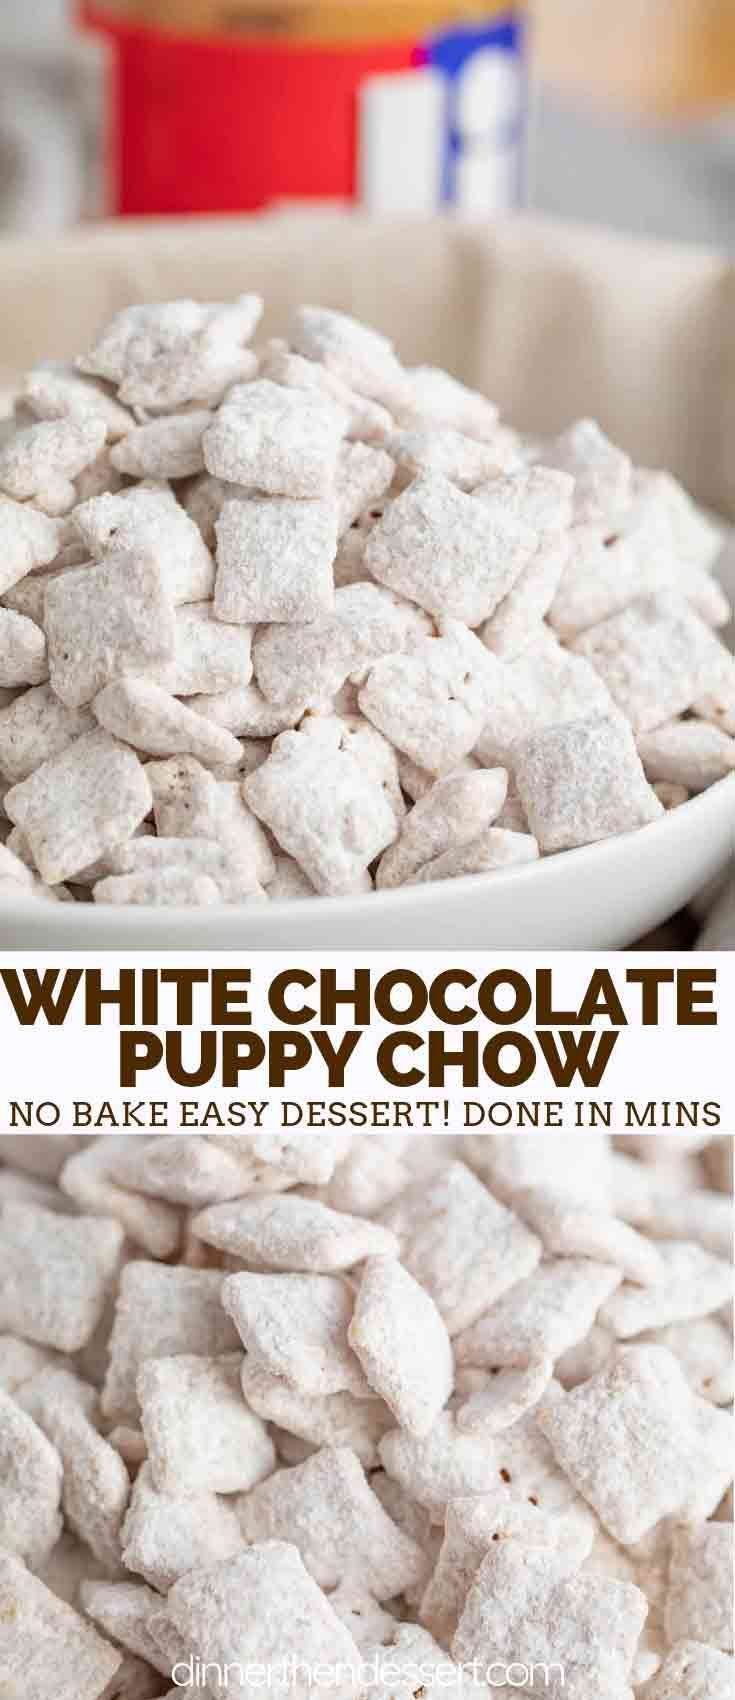 White Chocolate Puppy Chow Muddy Buddies Are Crunchy And Sweet Made With Only 4 Ingredi Puppy Chow Recipes Chex Mix Recipes Sweet Chocolate Chex Mix Recipes